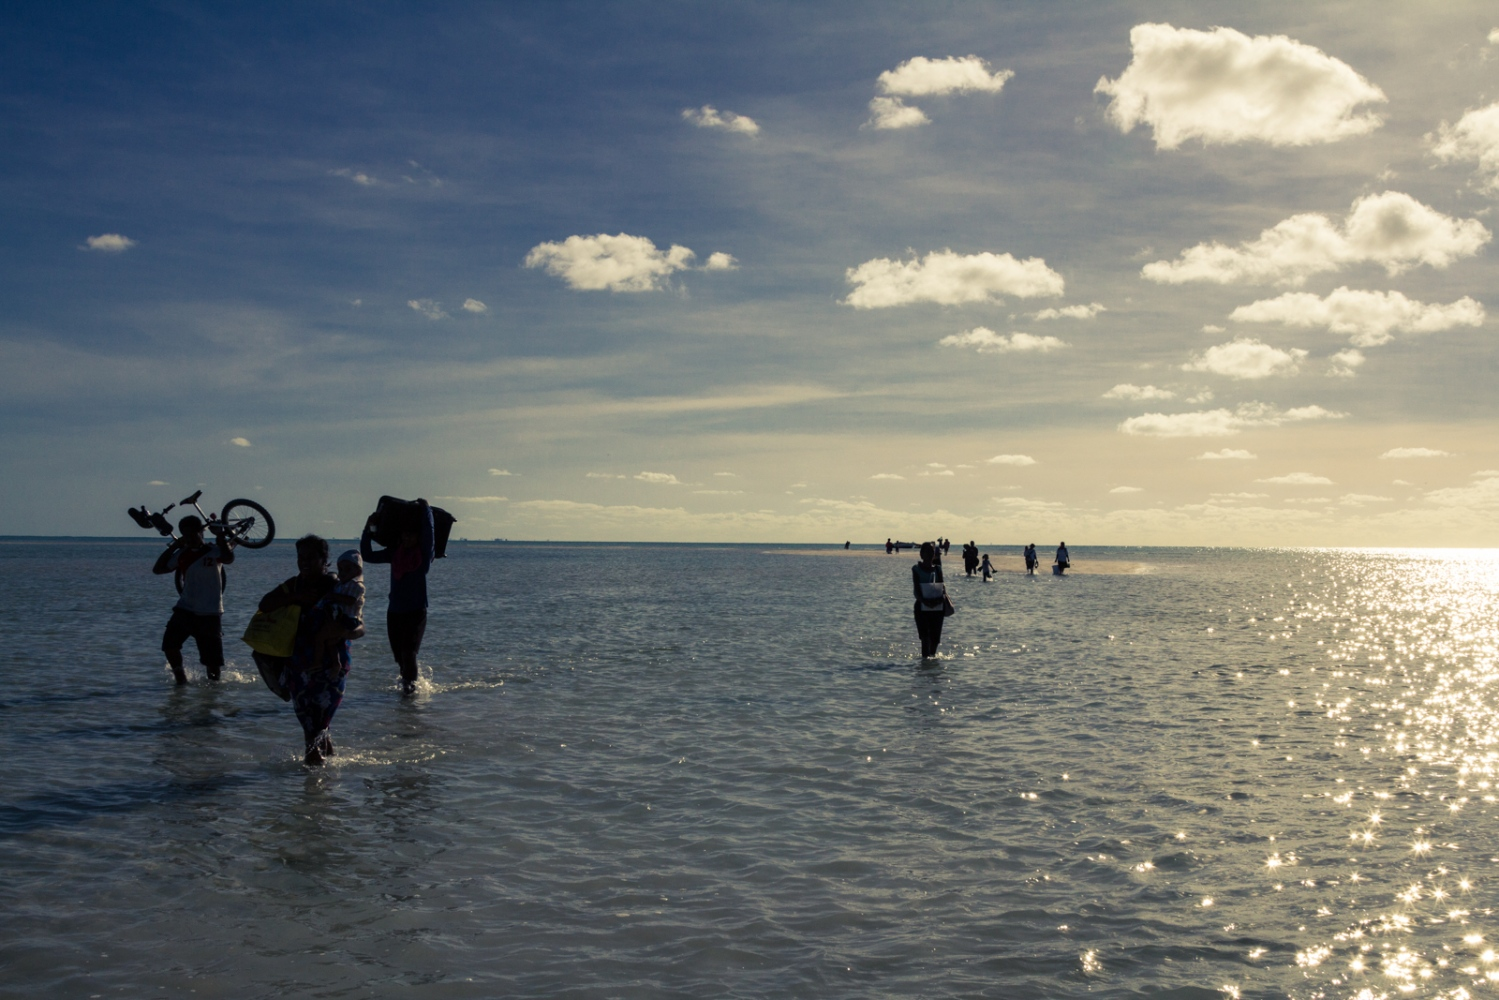 Inter-island migrants walk across the ocean to reach their destination of South Tarawa, Kiribati. As more of the outer and remote islands in Kiribati face climate change impacts, mainly sea level rise, many are moving to the island of South Tarawa, the crowded capital.